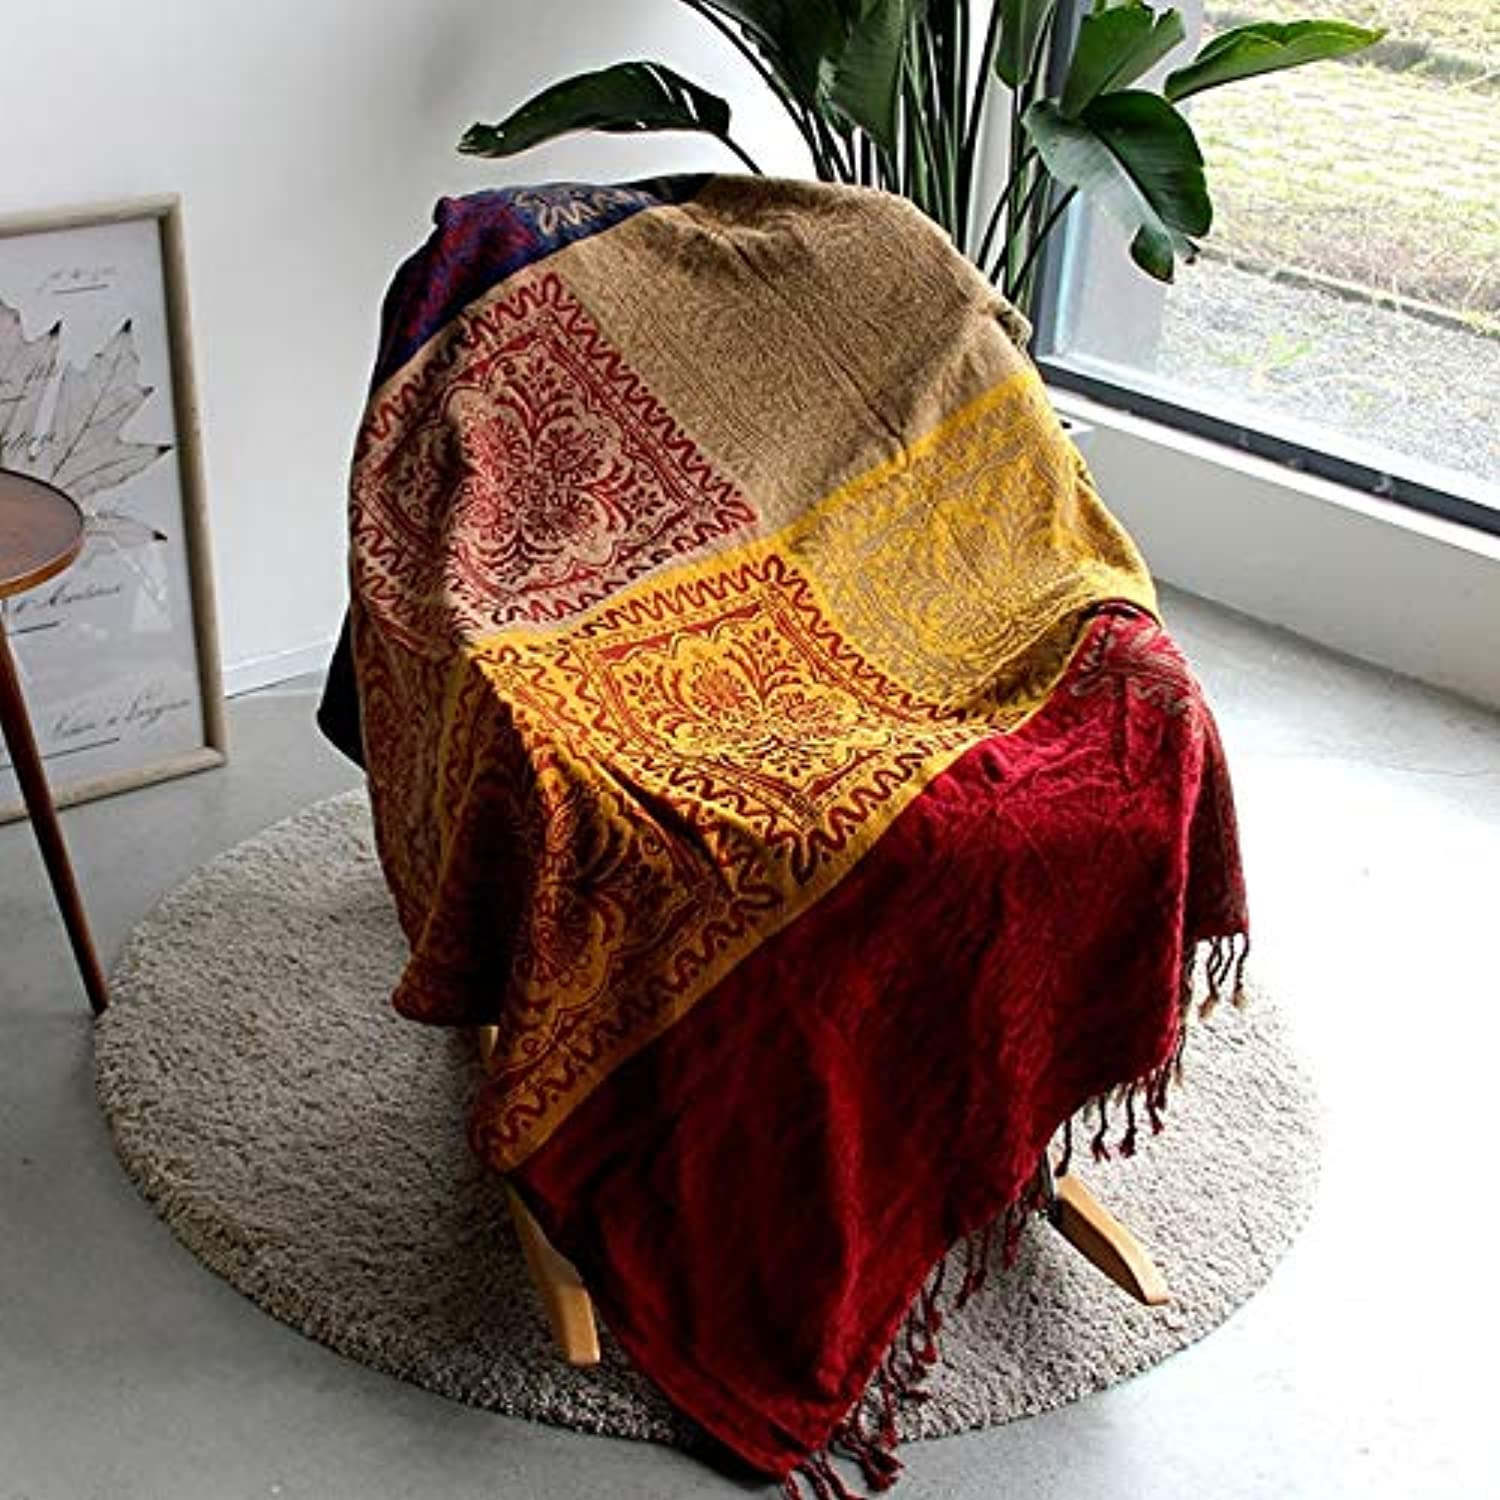 KWELJW 5 Couleurs Couleurful Bohemian Chenille Plaids Blanket Sofa Decorative Throws on Sofa Bed grand Cobertor Blanket with Tassel T176 150x190cm 1-100D